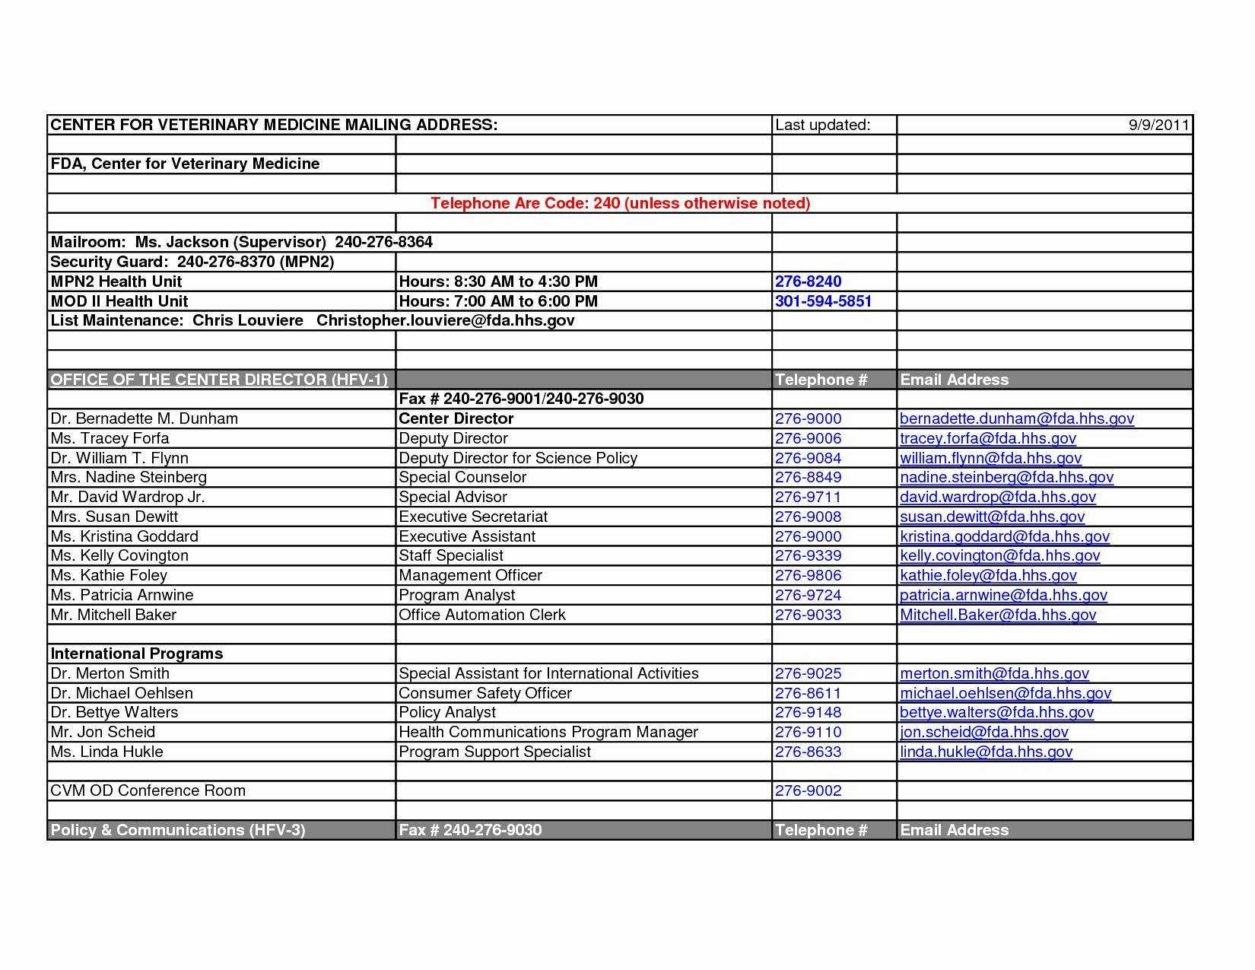 Production Planning Spreadsheet Template Intended For Production Planning Templates For Free In Excel  Spreadsheet